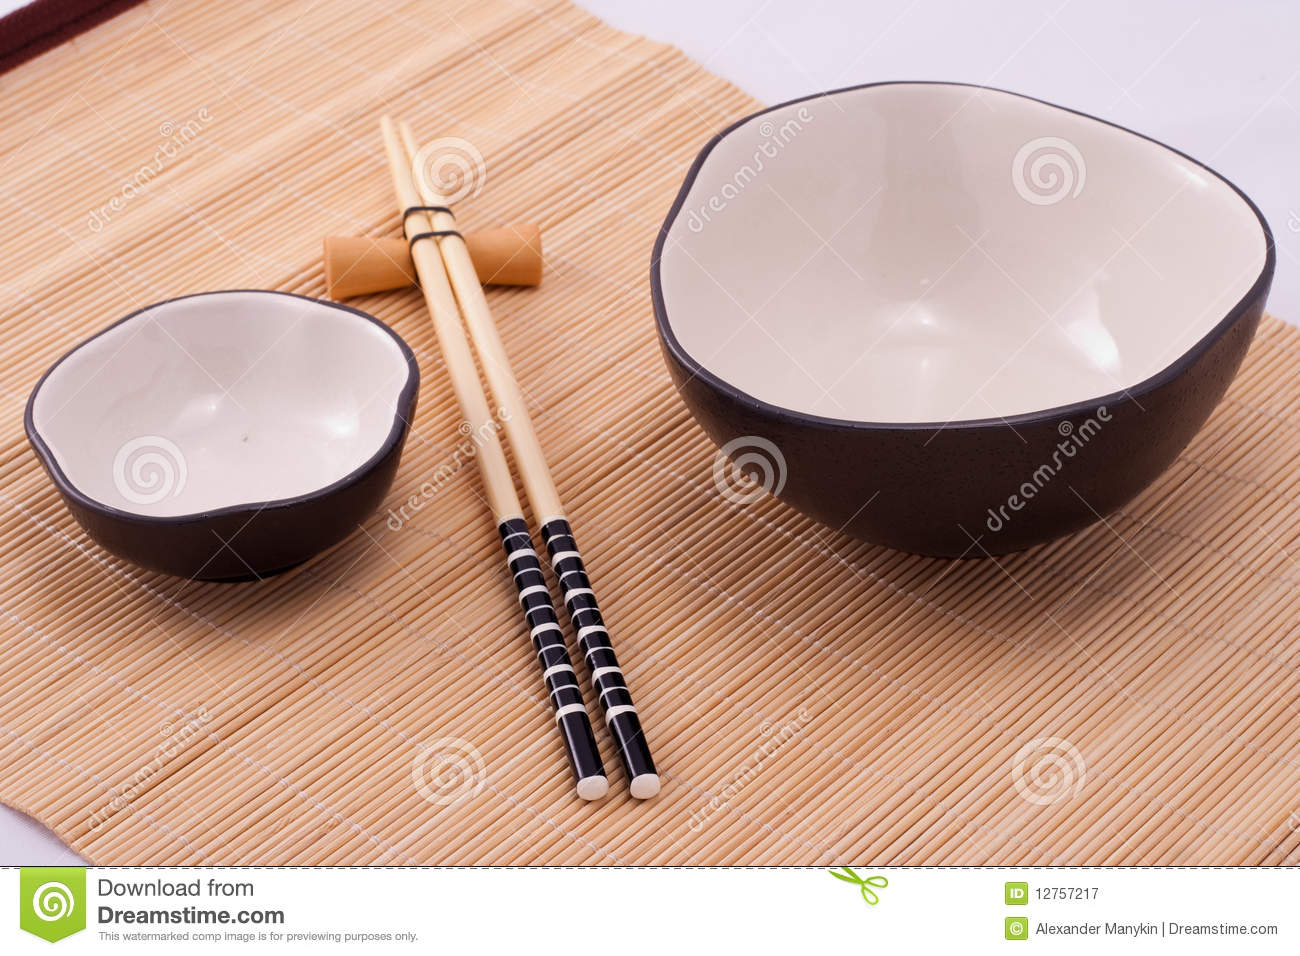 Cookware japanese cuisine royalty free stock photography for Art and cuisine ceramic cookware